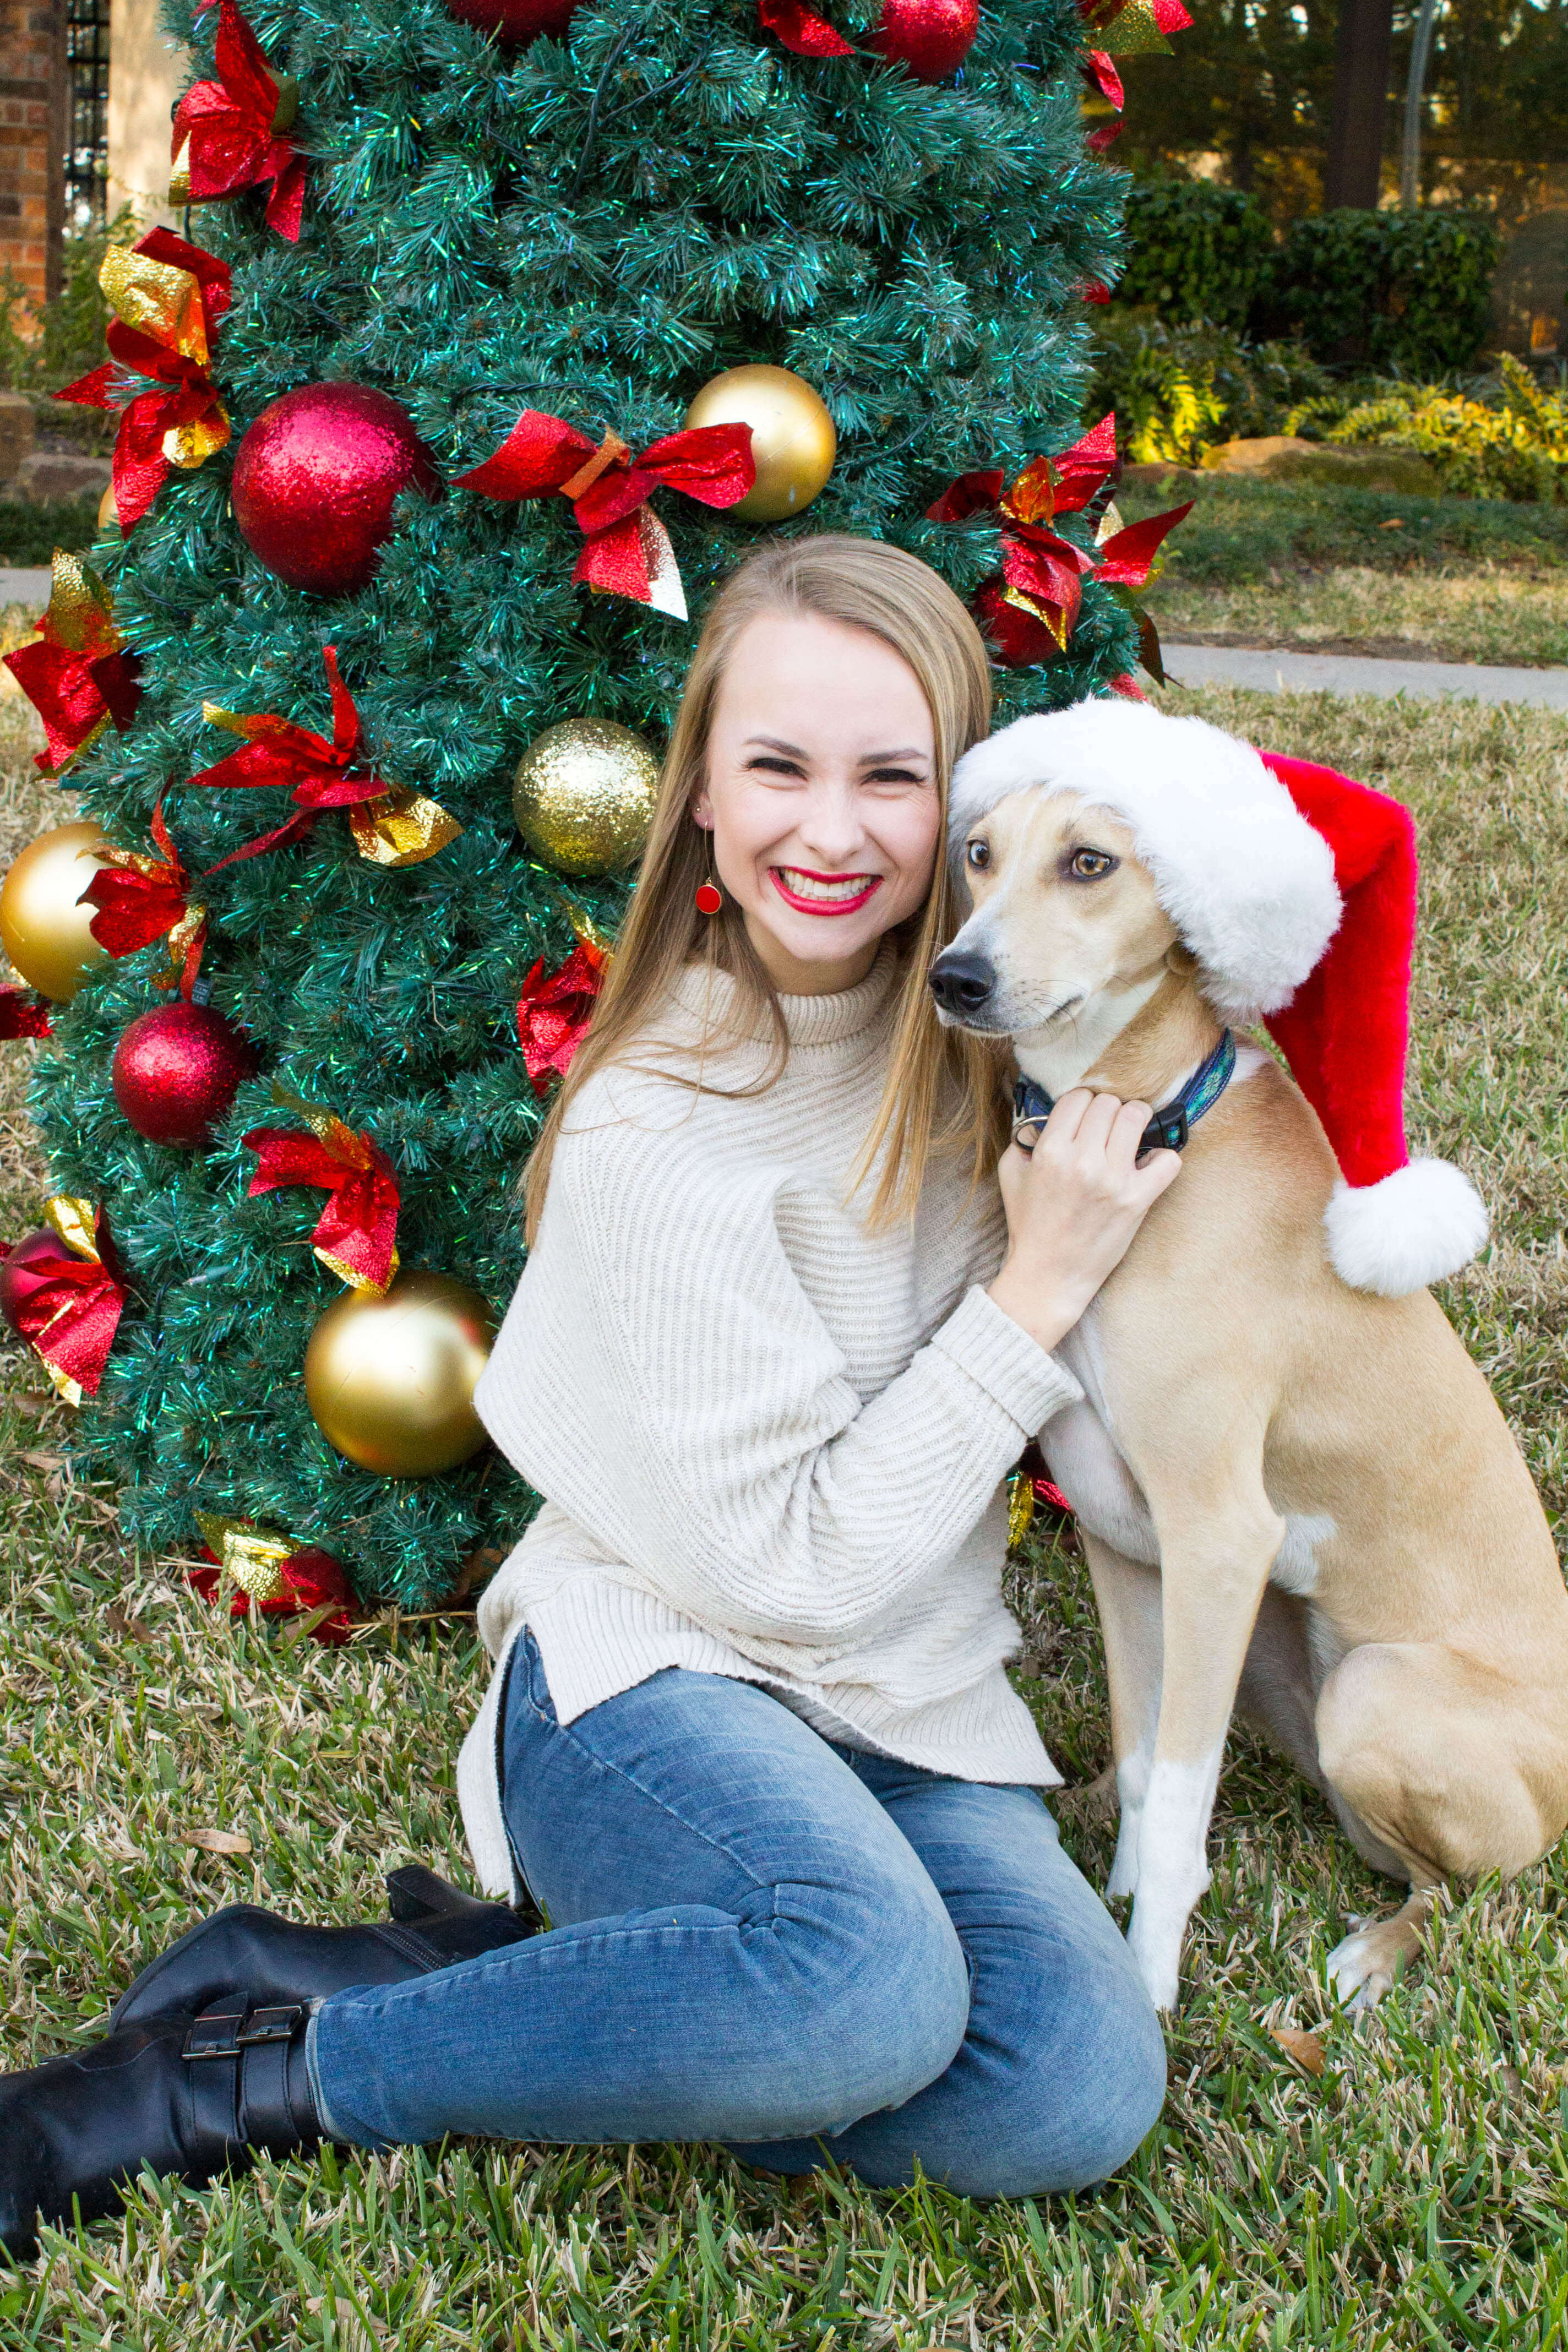 15 Activities To Do The Day After Christmas | The Blonder Life